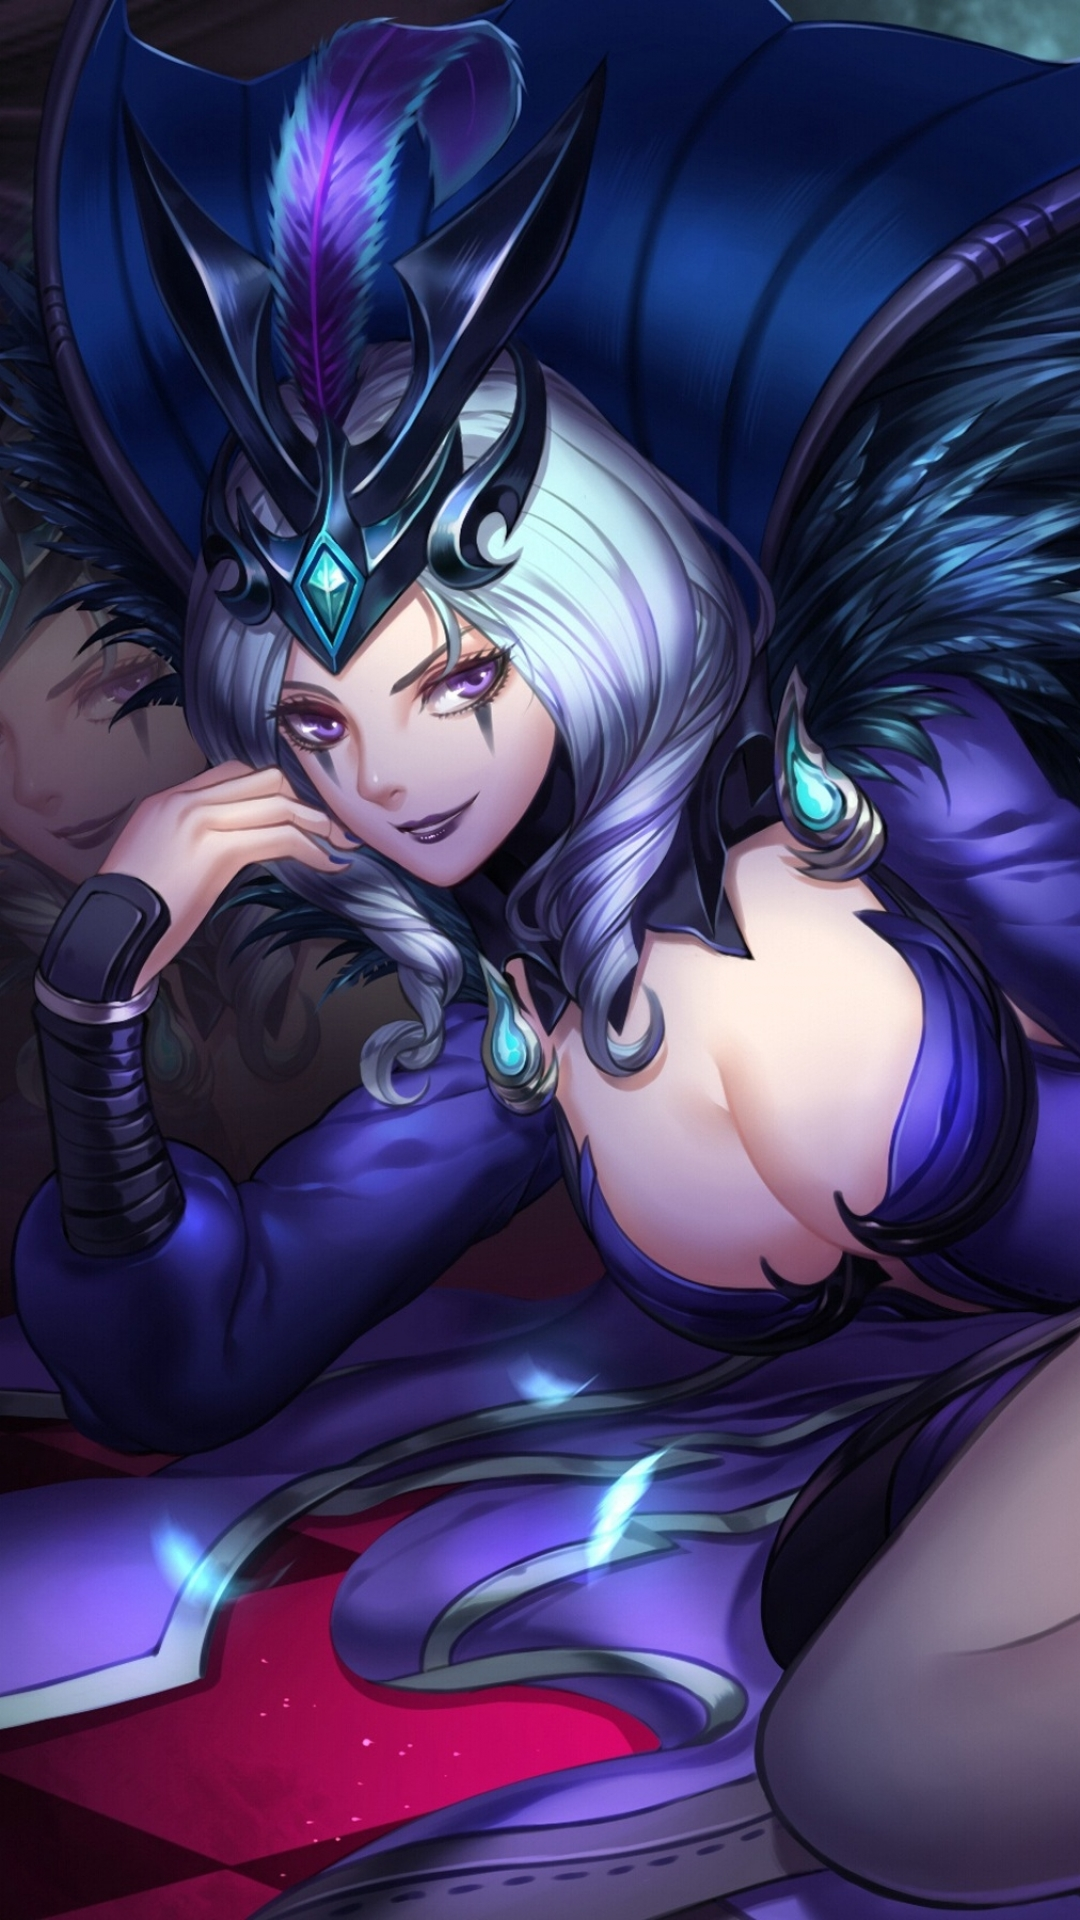 Naruto Girls Hd Wallpapers Download League Of Legends Mobile Wallpaper Gallery